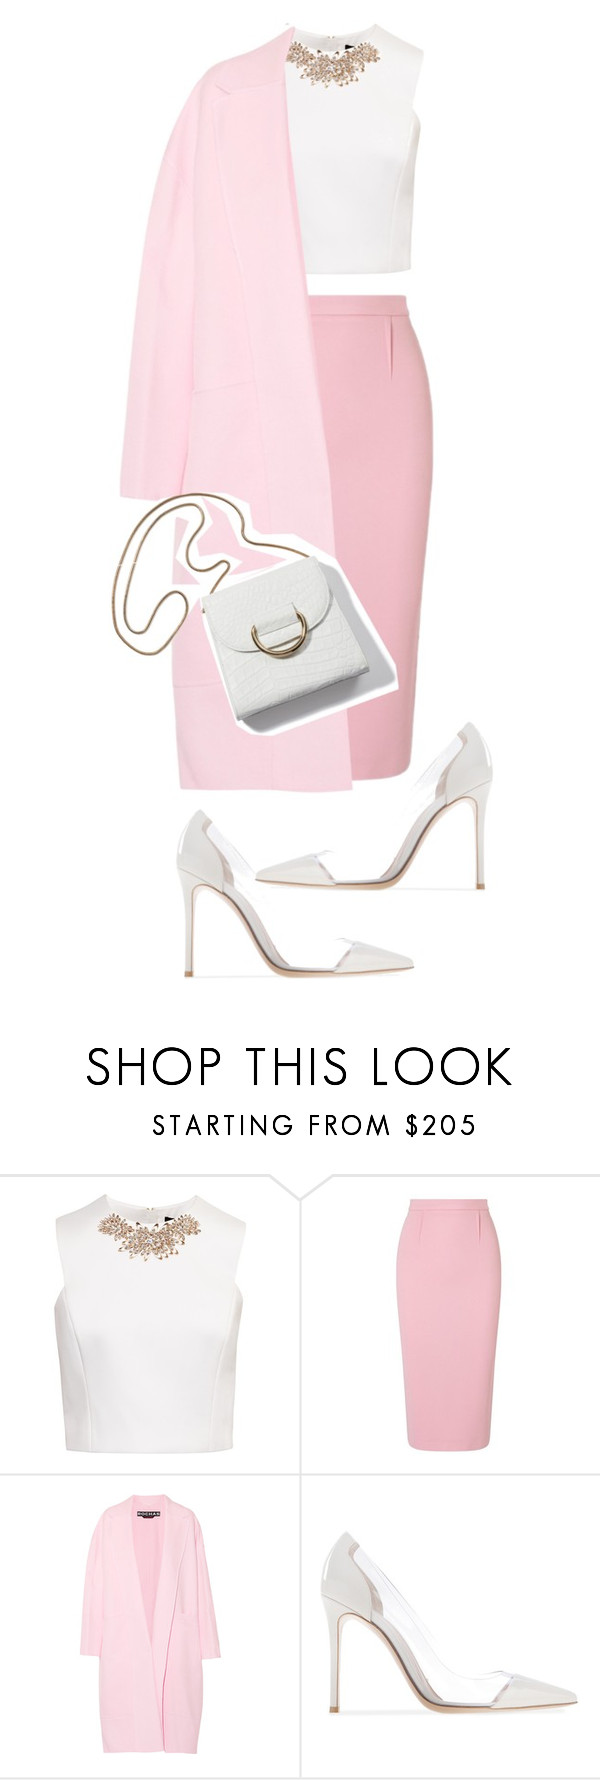 """""""#140"""" by marishkabondareva ❤ liked on Polyvore featuring Ted Baker, Roland Mouret and Rochas"""